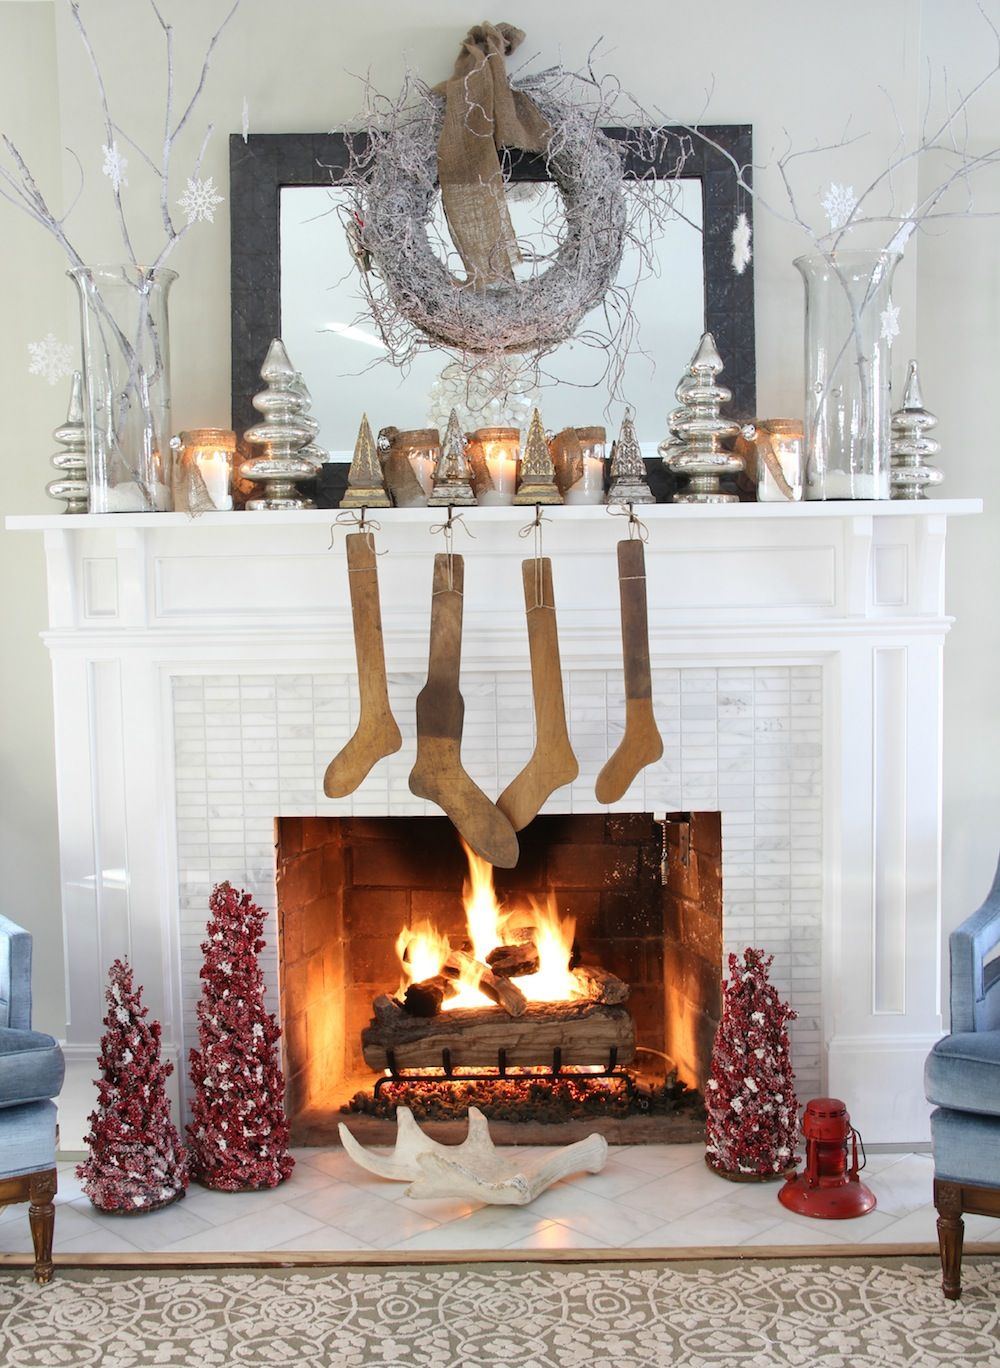 retro ideas decoration christmas having white walls fireplace hanging brown classical socks and cool silver ornaments